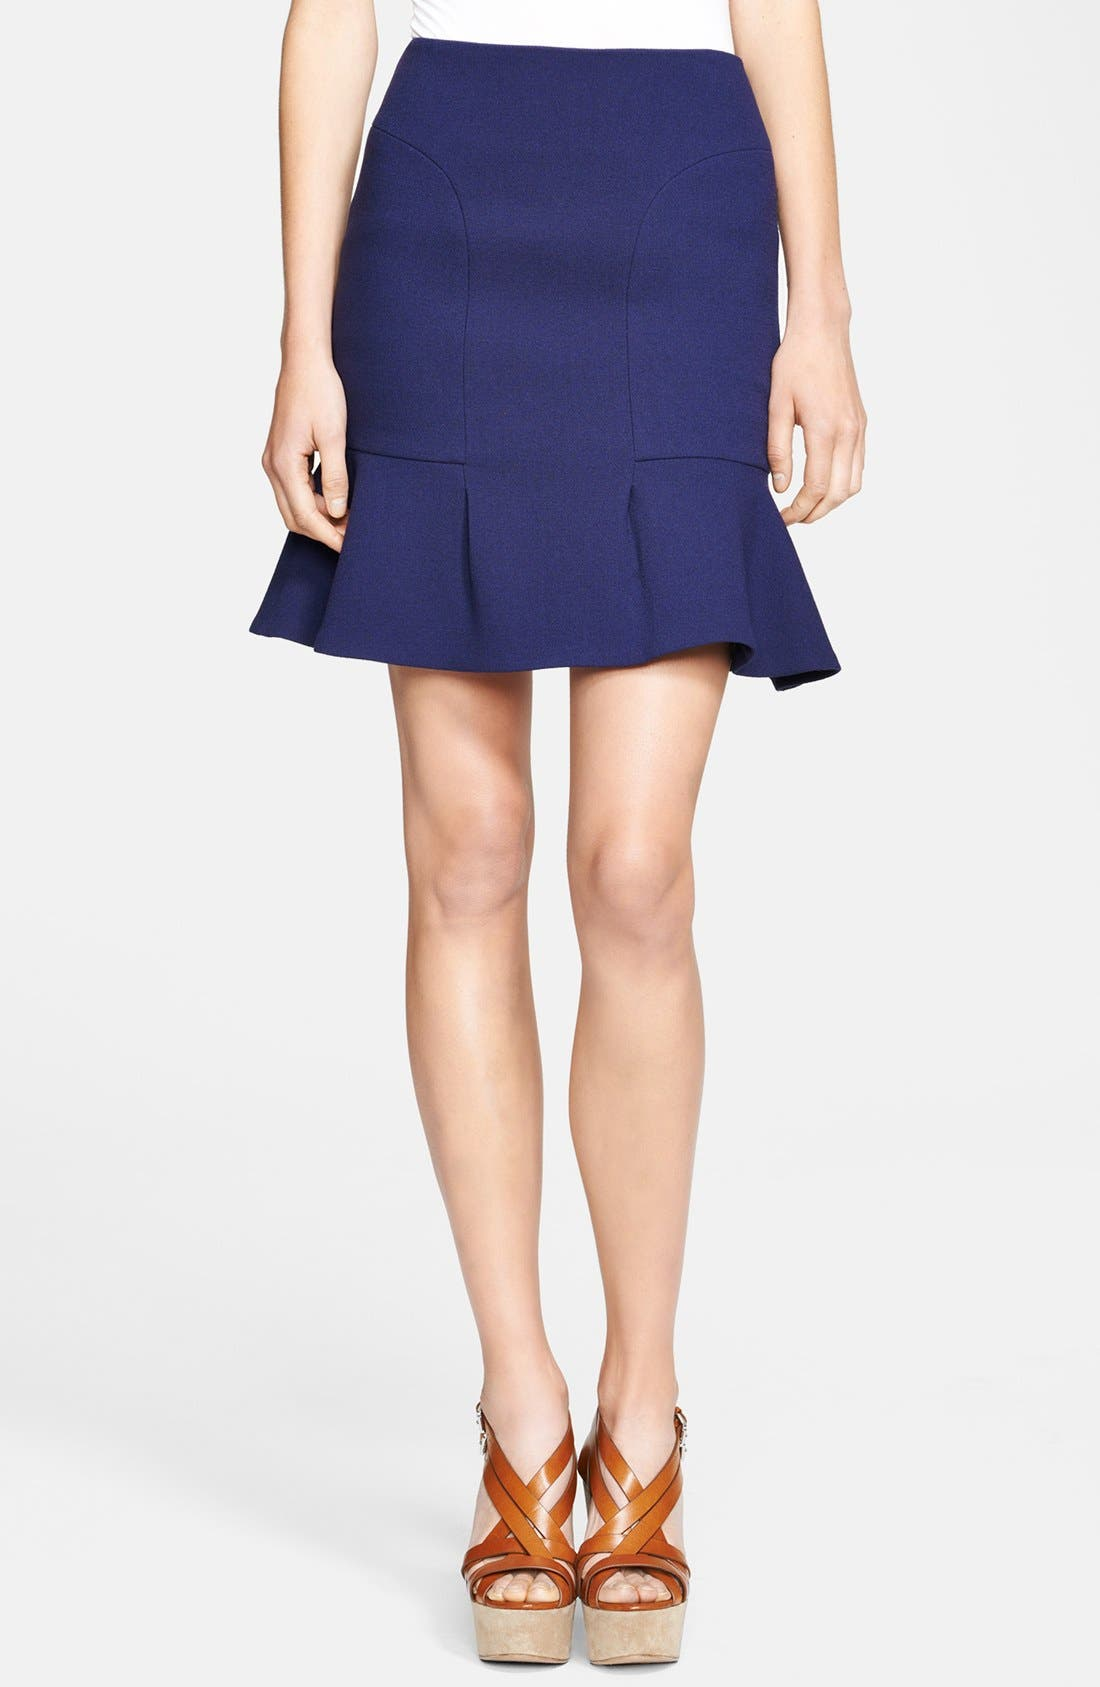 Main Image - Michael Kors Bouclé Stretch Wool Skirt